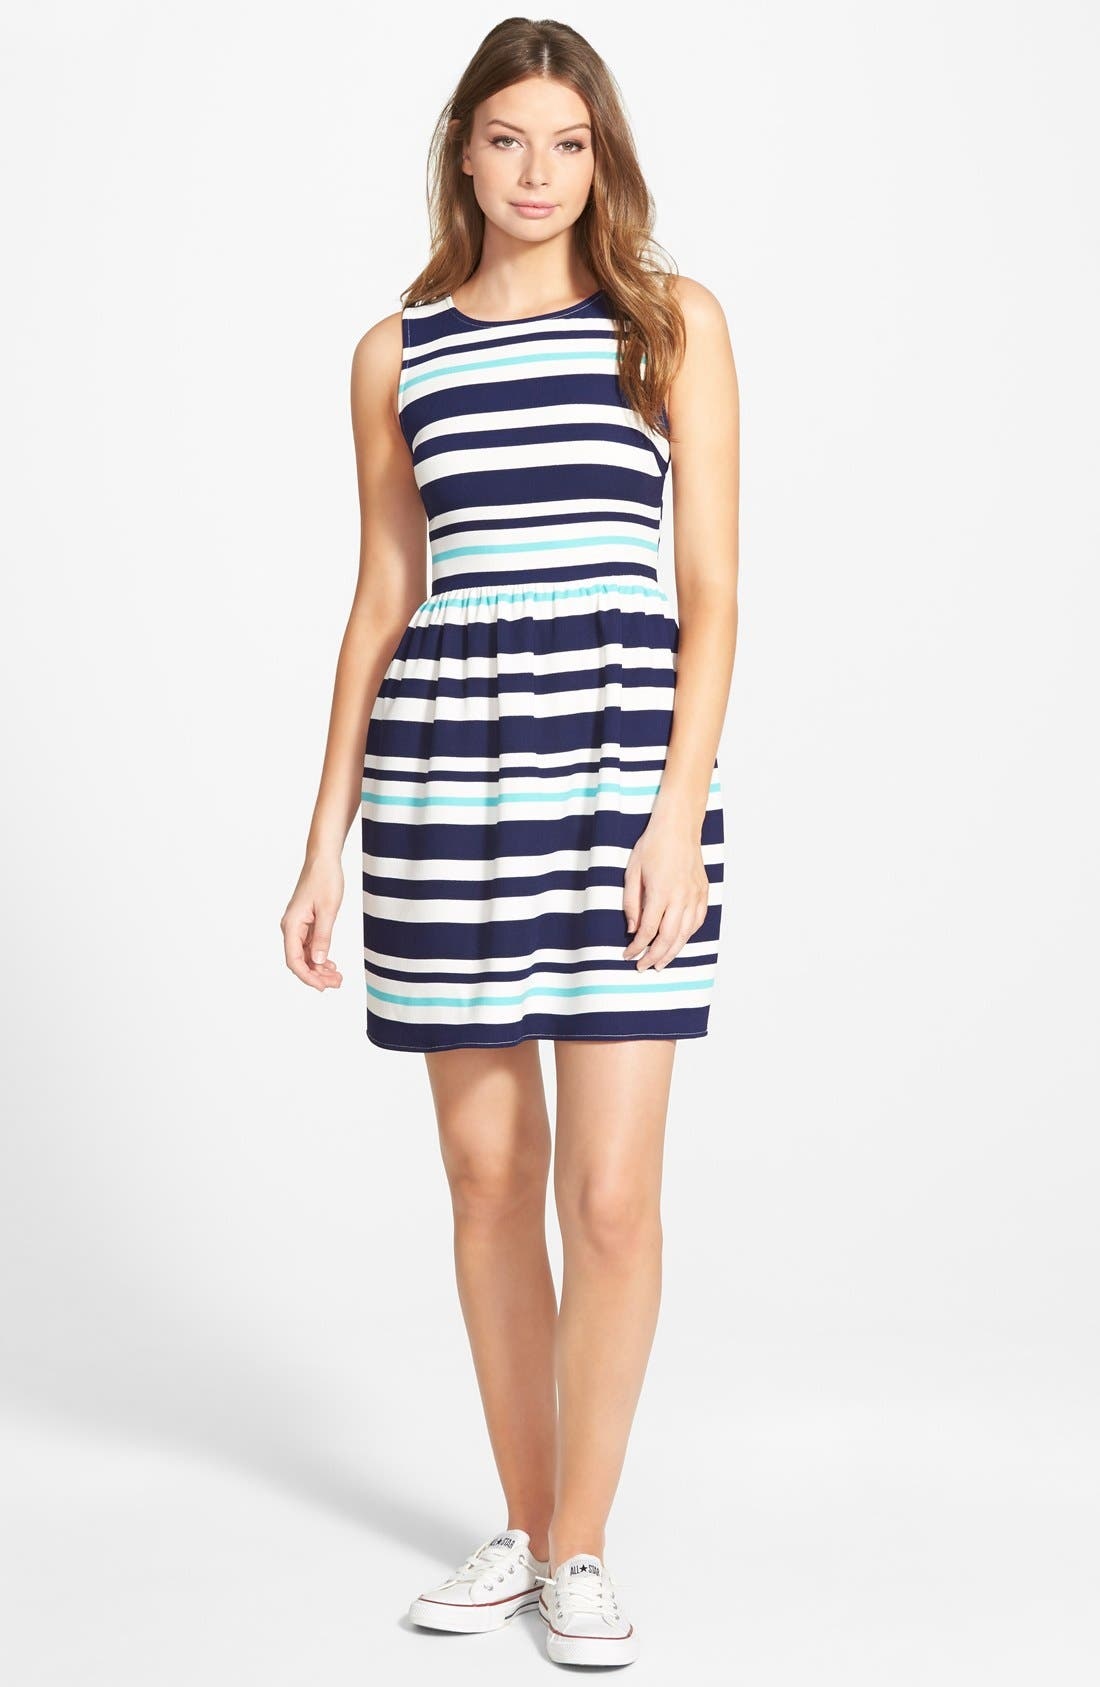 Alternate Image 1 Selected - Everly Stripe Skater Dress